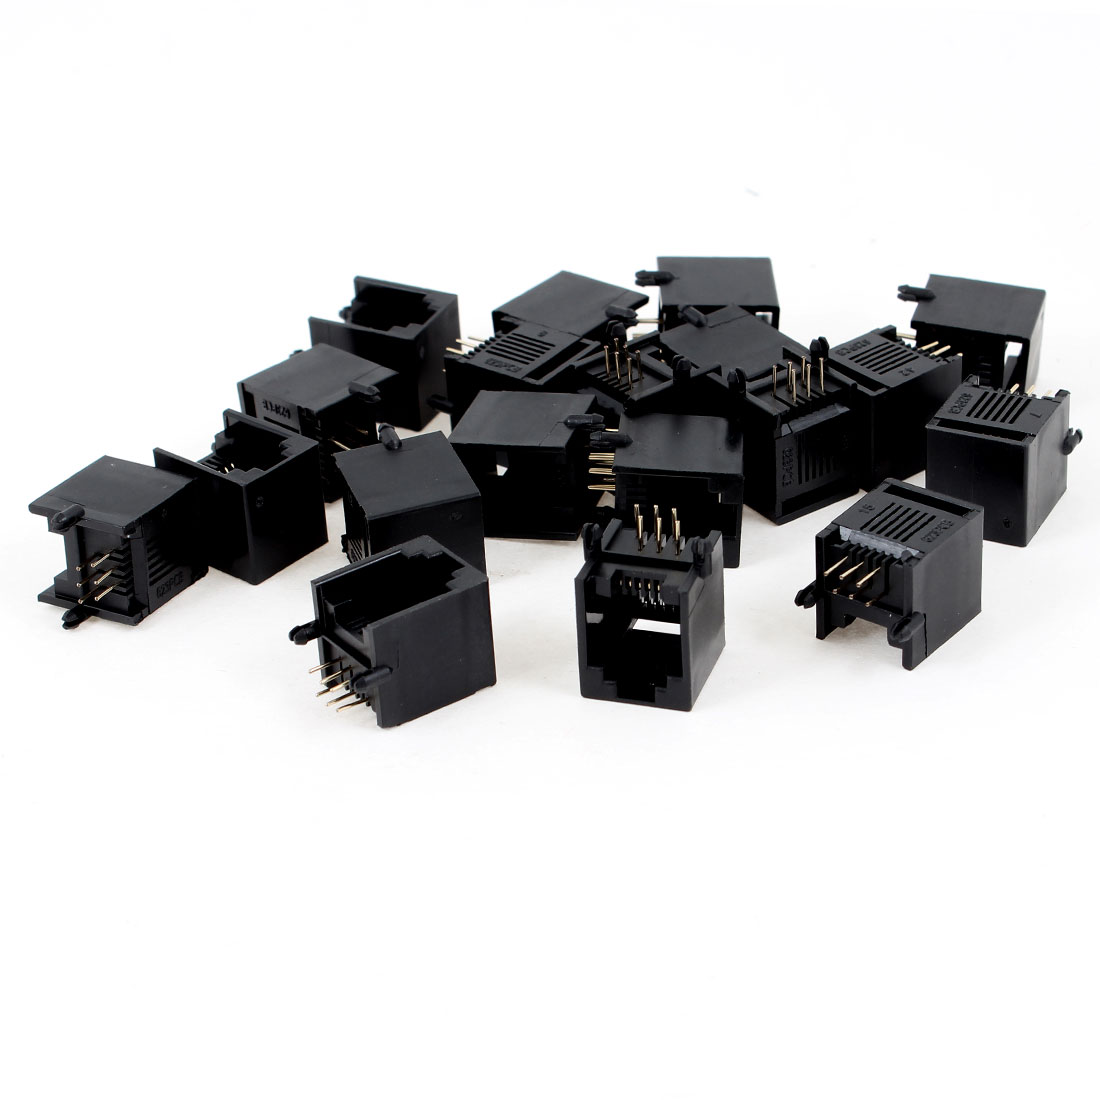 19 Pcs Black Plastic Unshielded RJ12 6P6C Network Modular PCB Connector Jacks